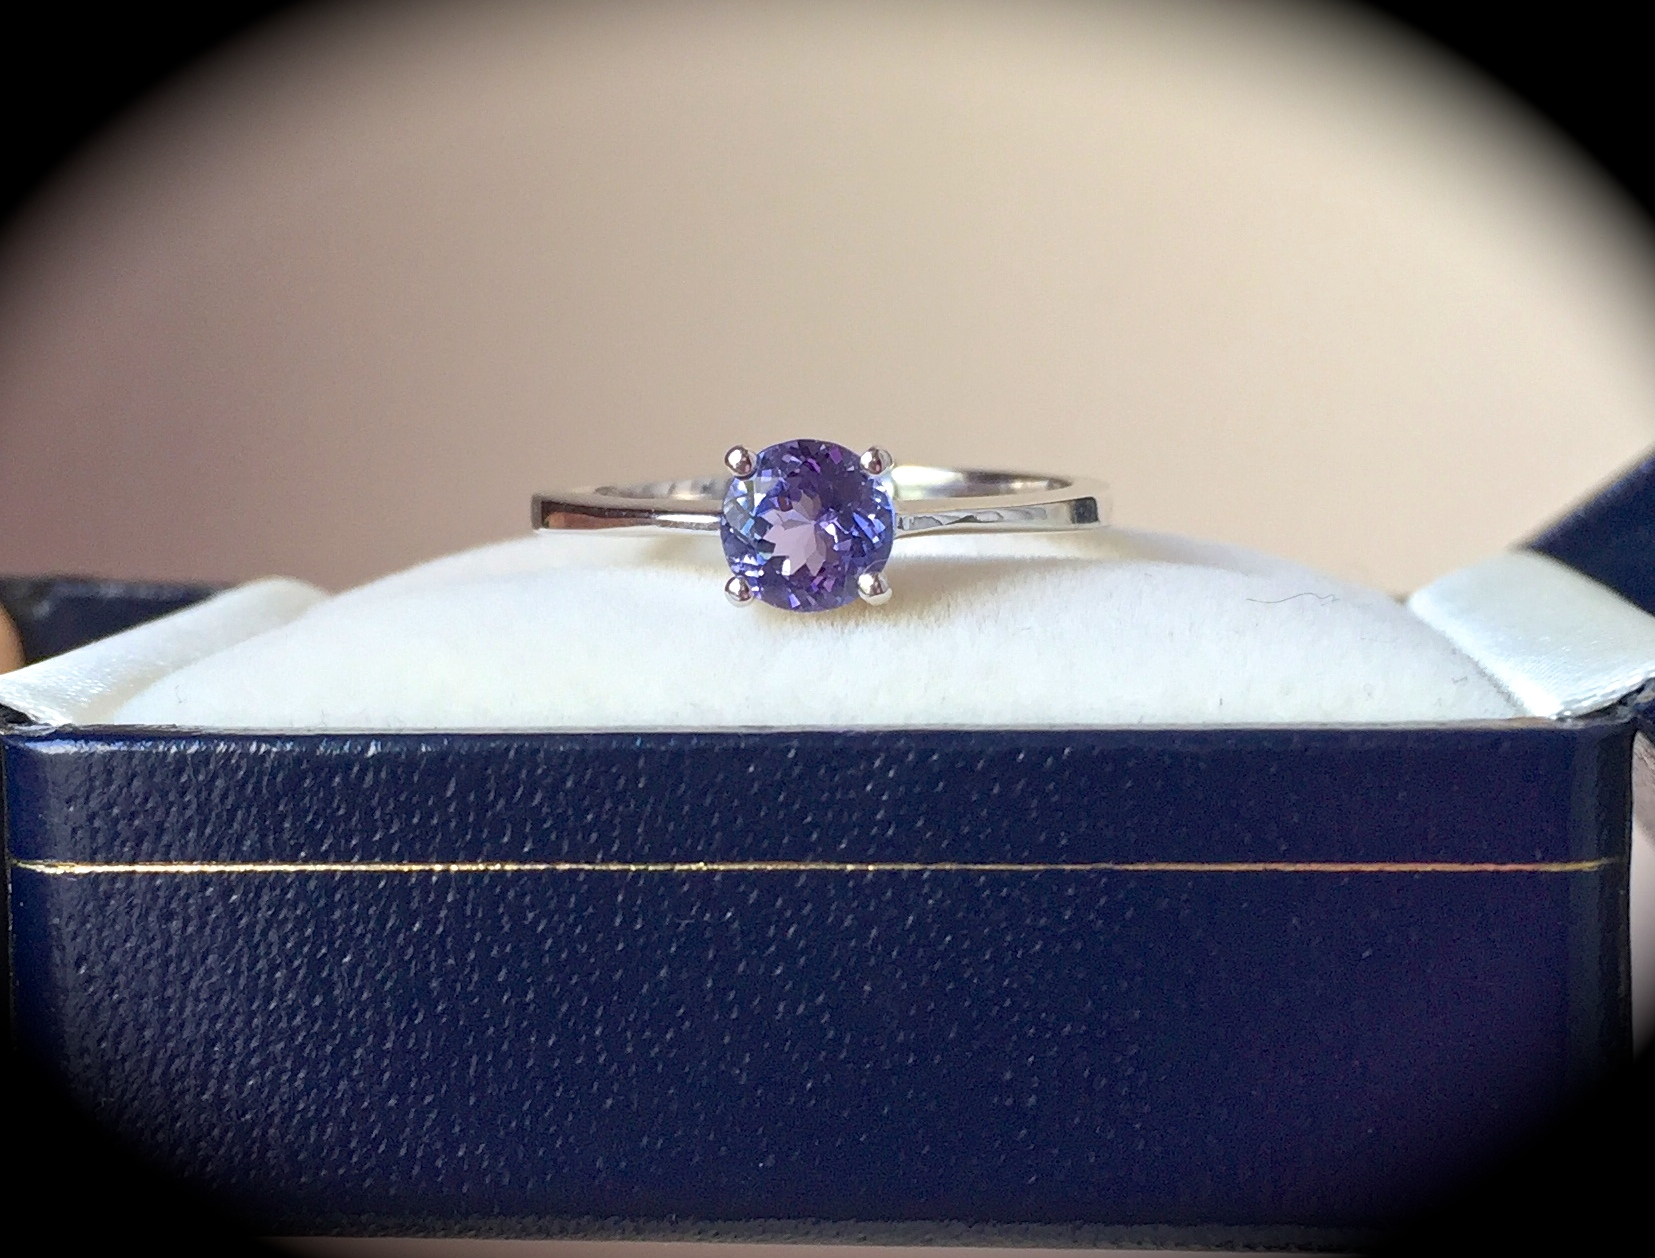 tanzanite jewellery zag investment zig tag ring bespoke grade gemstone diamond customised halo